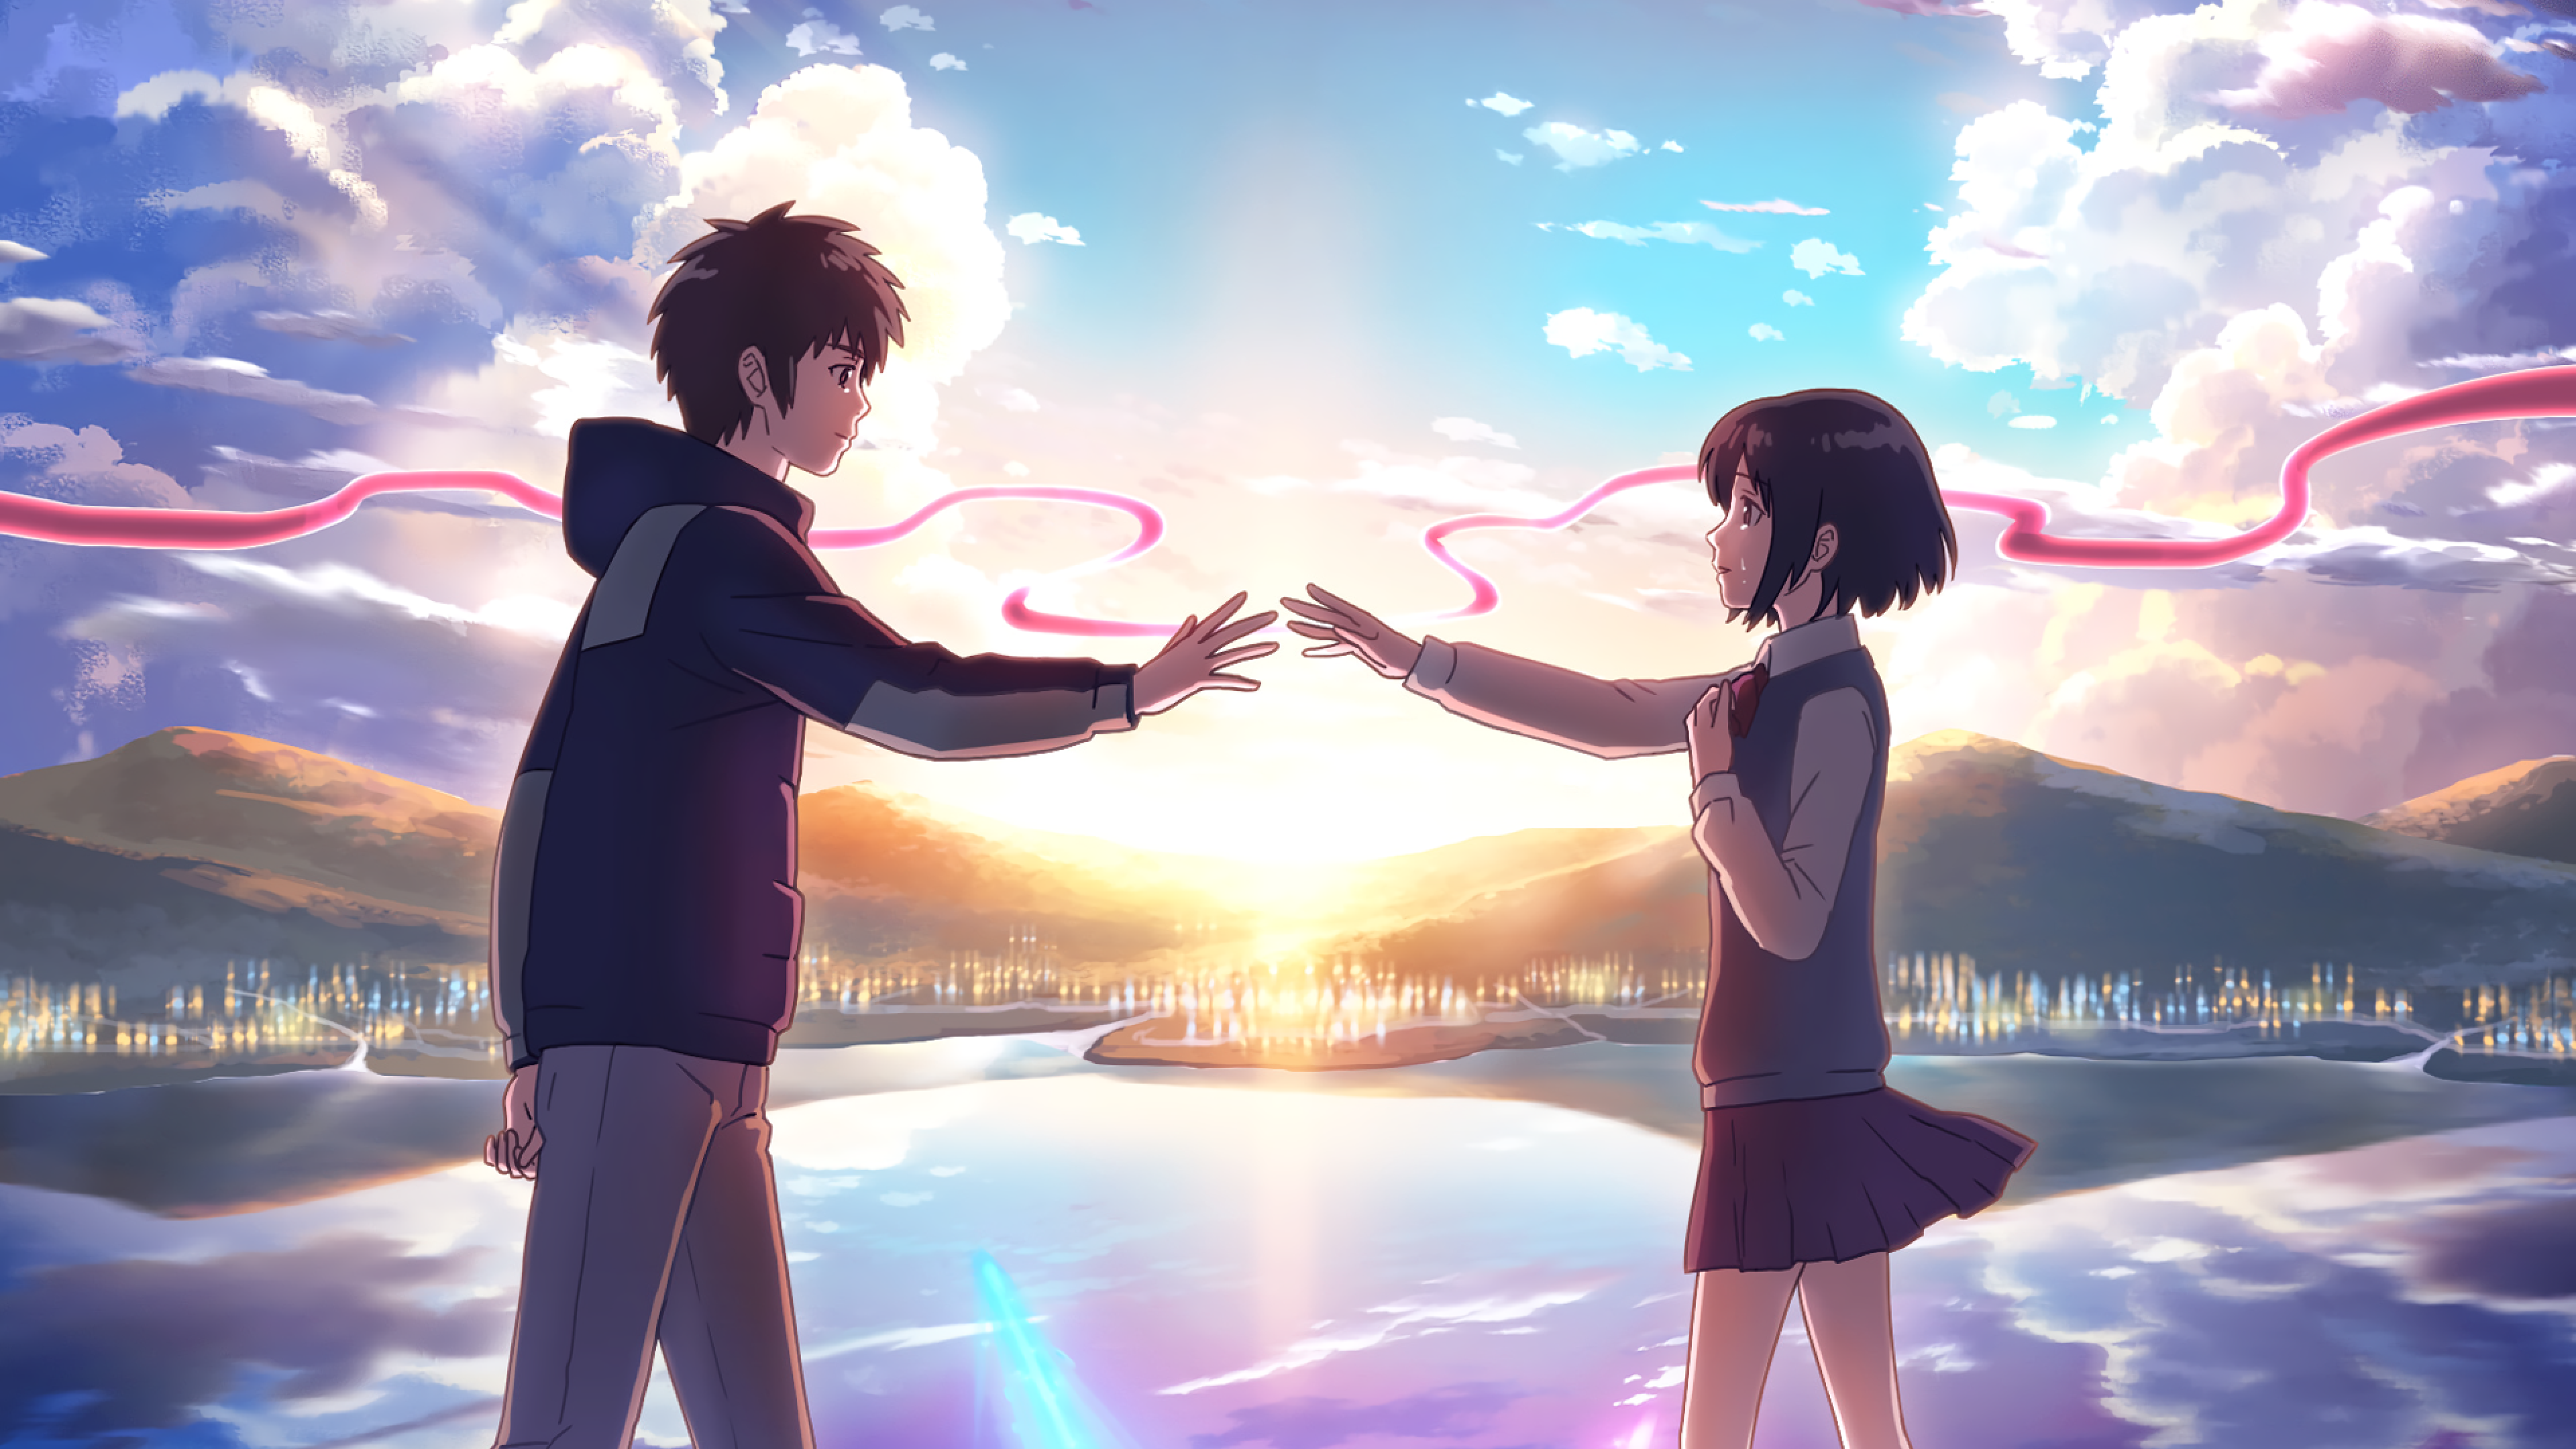 Your Name 4k Hd Wallpapers Top Free Your Name 4k Hd Backgrounds Wallpaperaccess